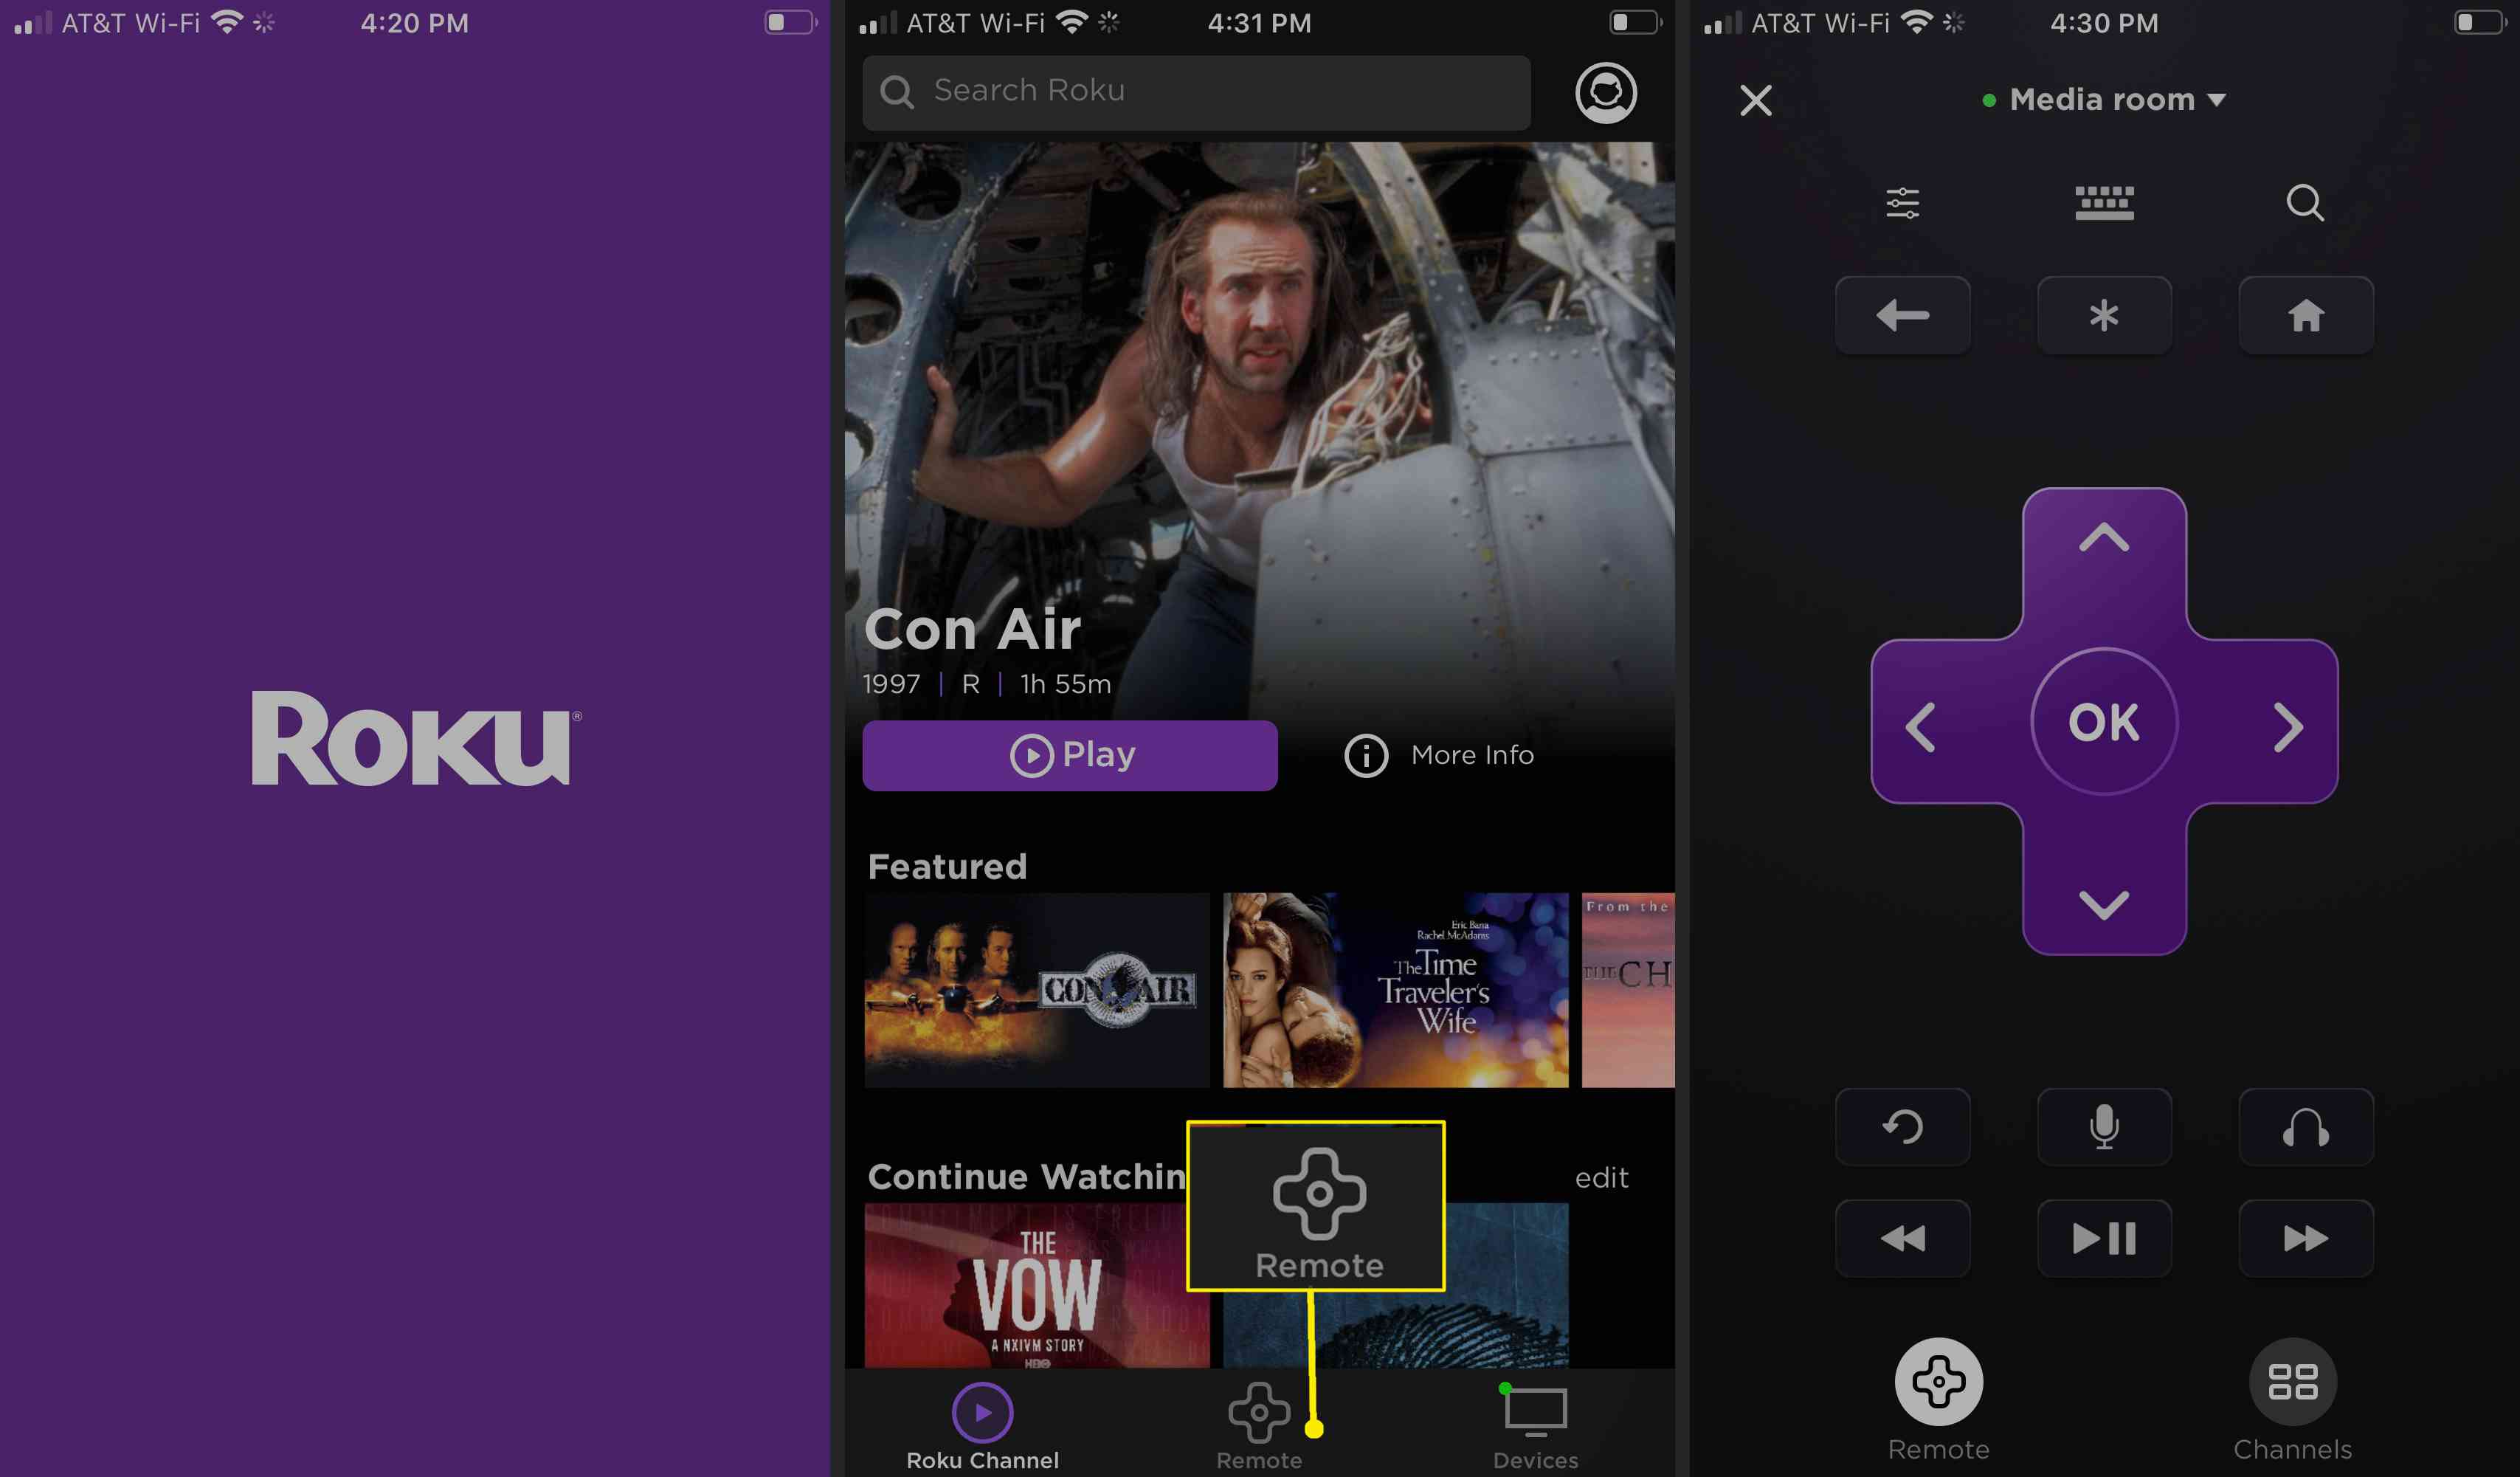 Access the Roku remote on the Roku mobile app by tapping Remote